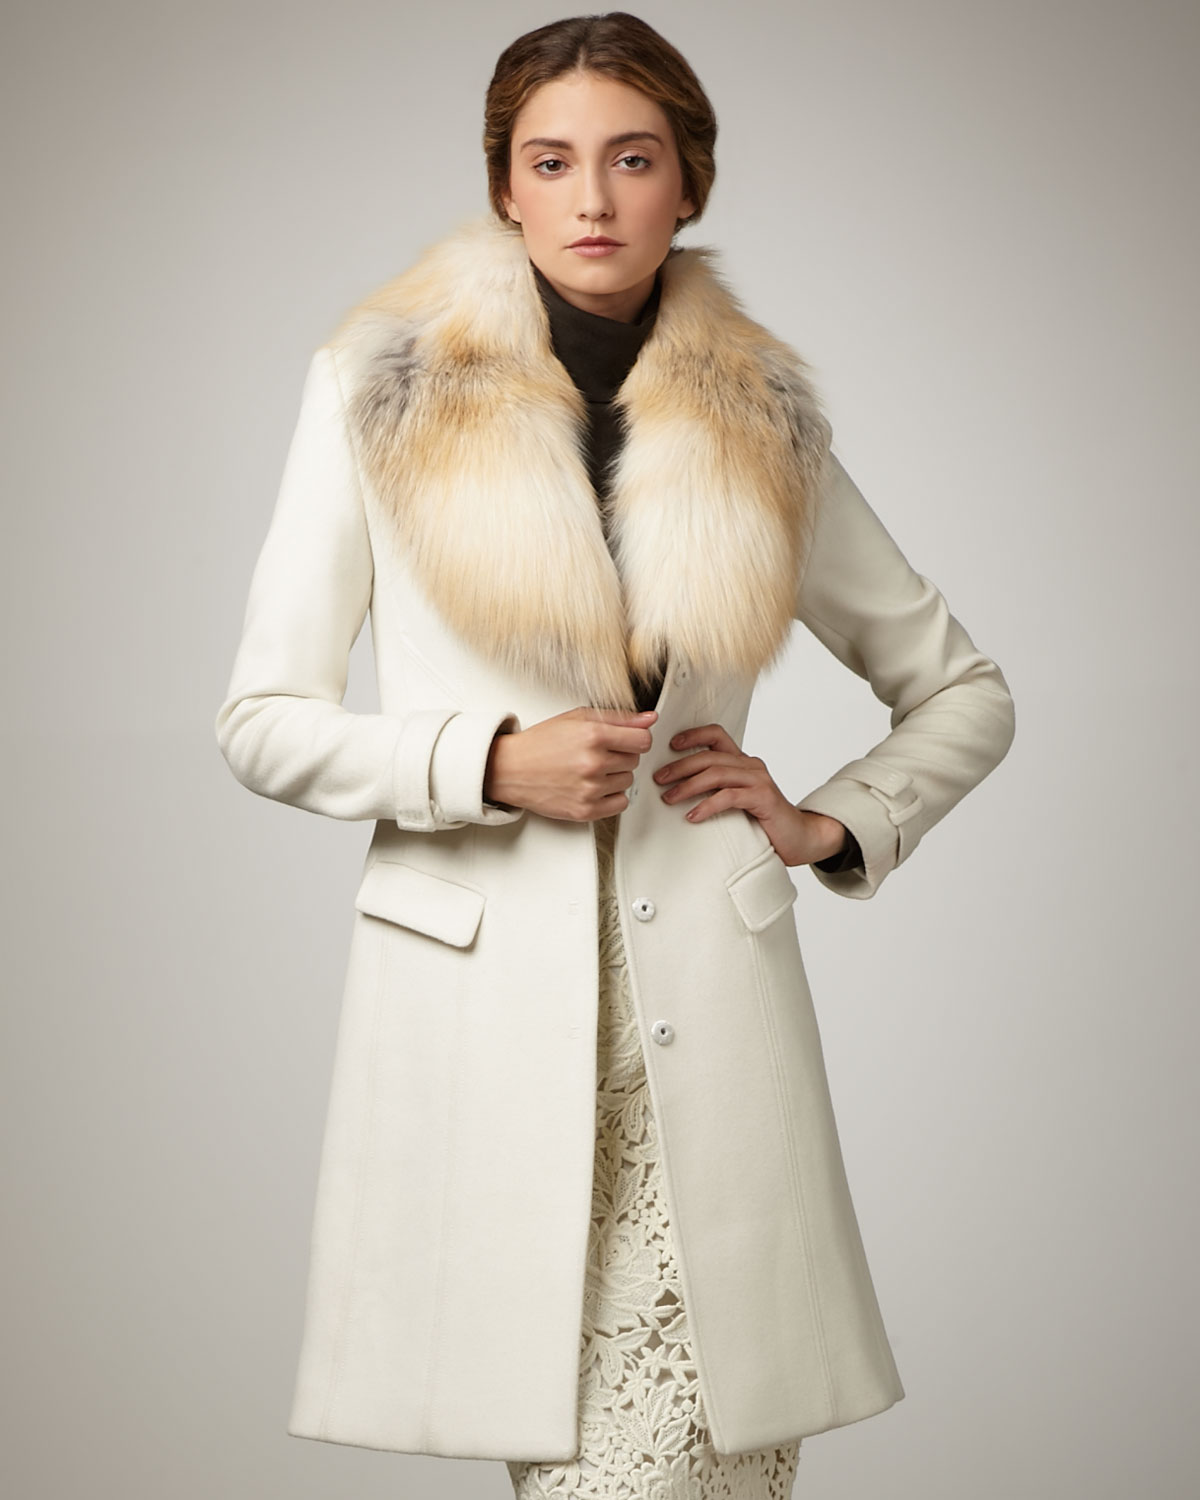 Elie tahari Joanne Fur-trim Coat in White | Lyst